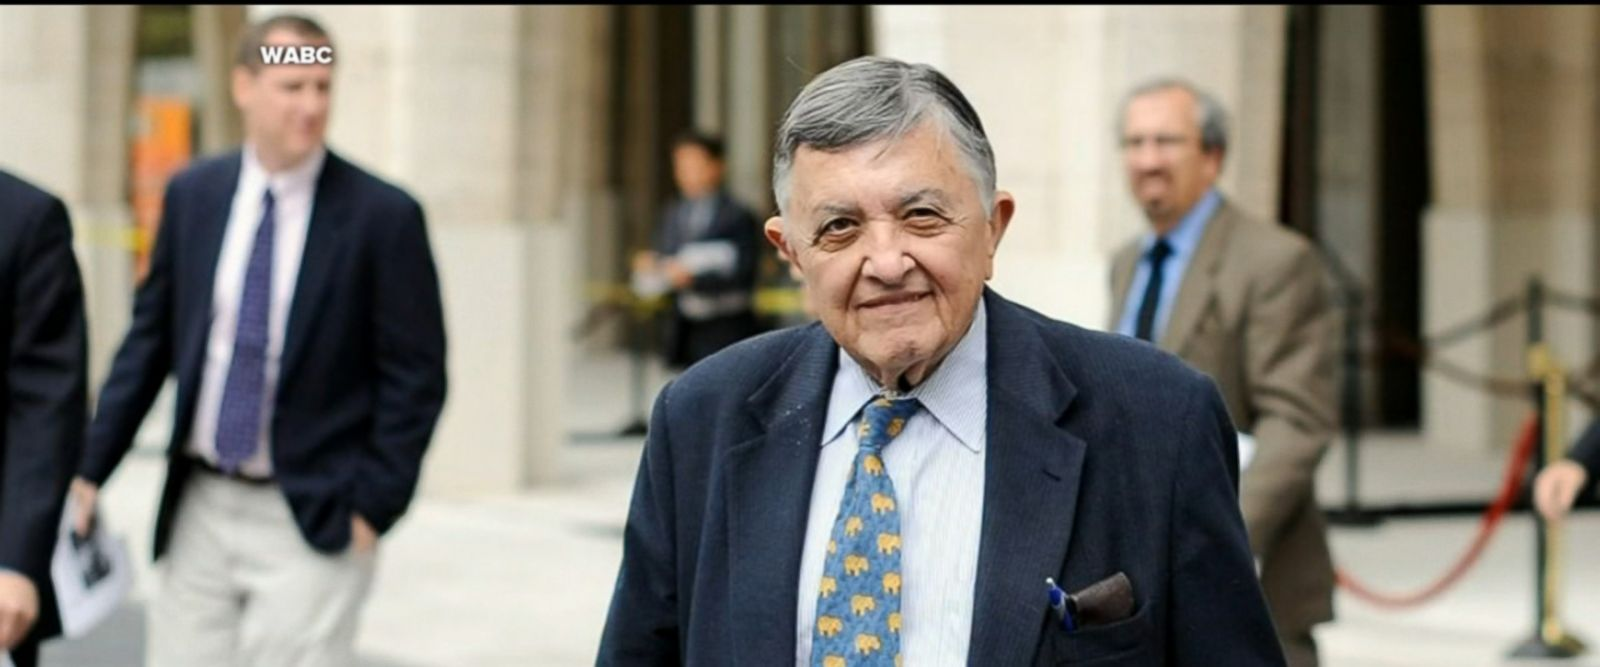 Gabe Pressman, an intrepid, Emmy-winning journalist who still relished going to work at the age of 93, died in his sleep early Friday at a Manhattan hospital.